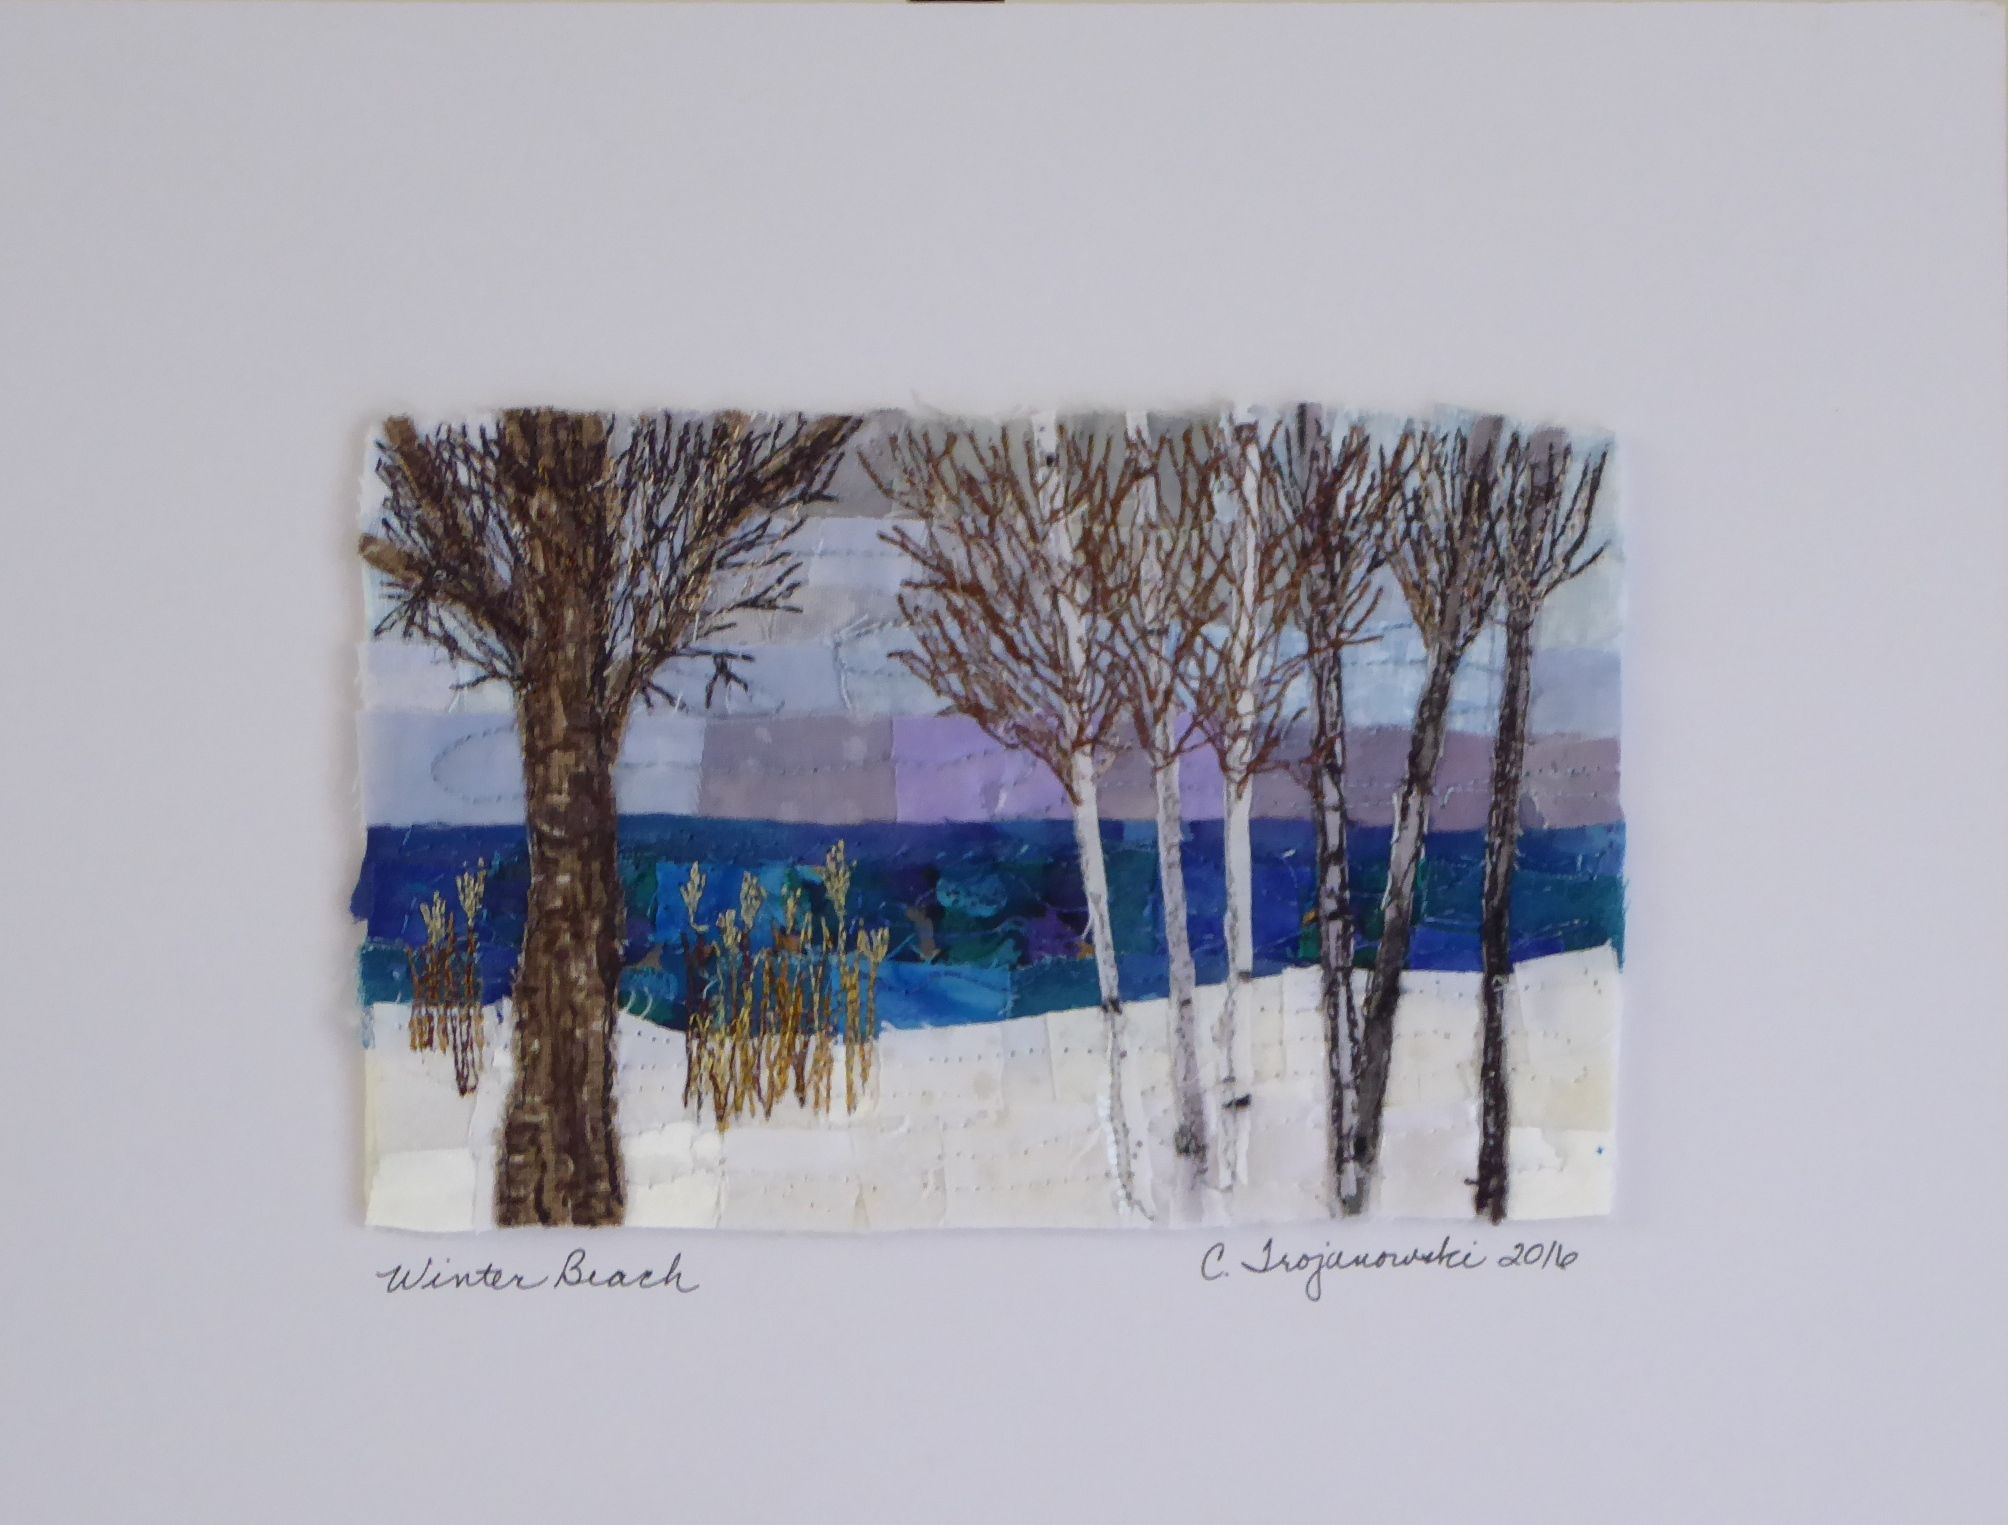 Winter Beach 4x6 Mini Mosaic Art Quilt Mounted On 8x10 Mat And